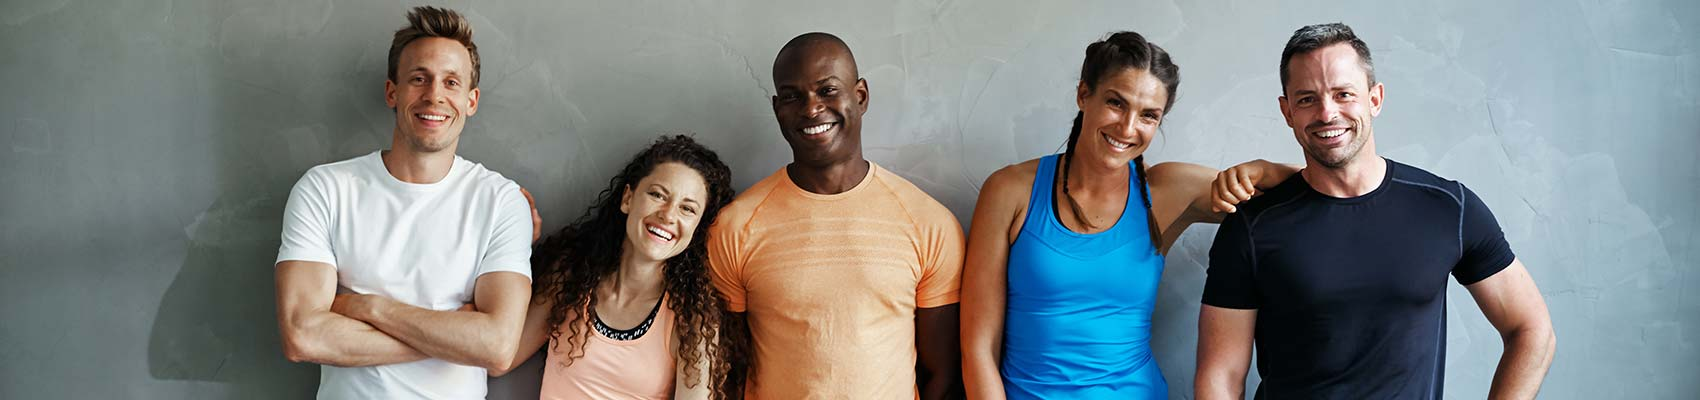 Smiling group of friends in sportswear laughing while standing arm in arm together in a gym.